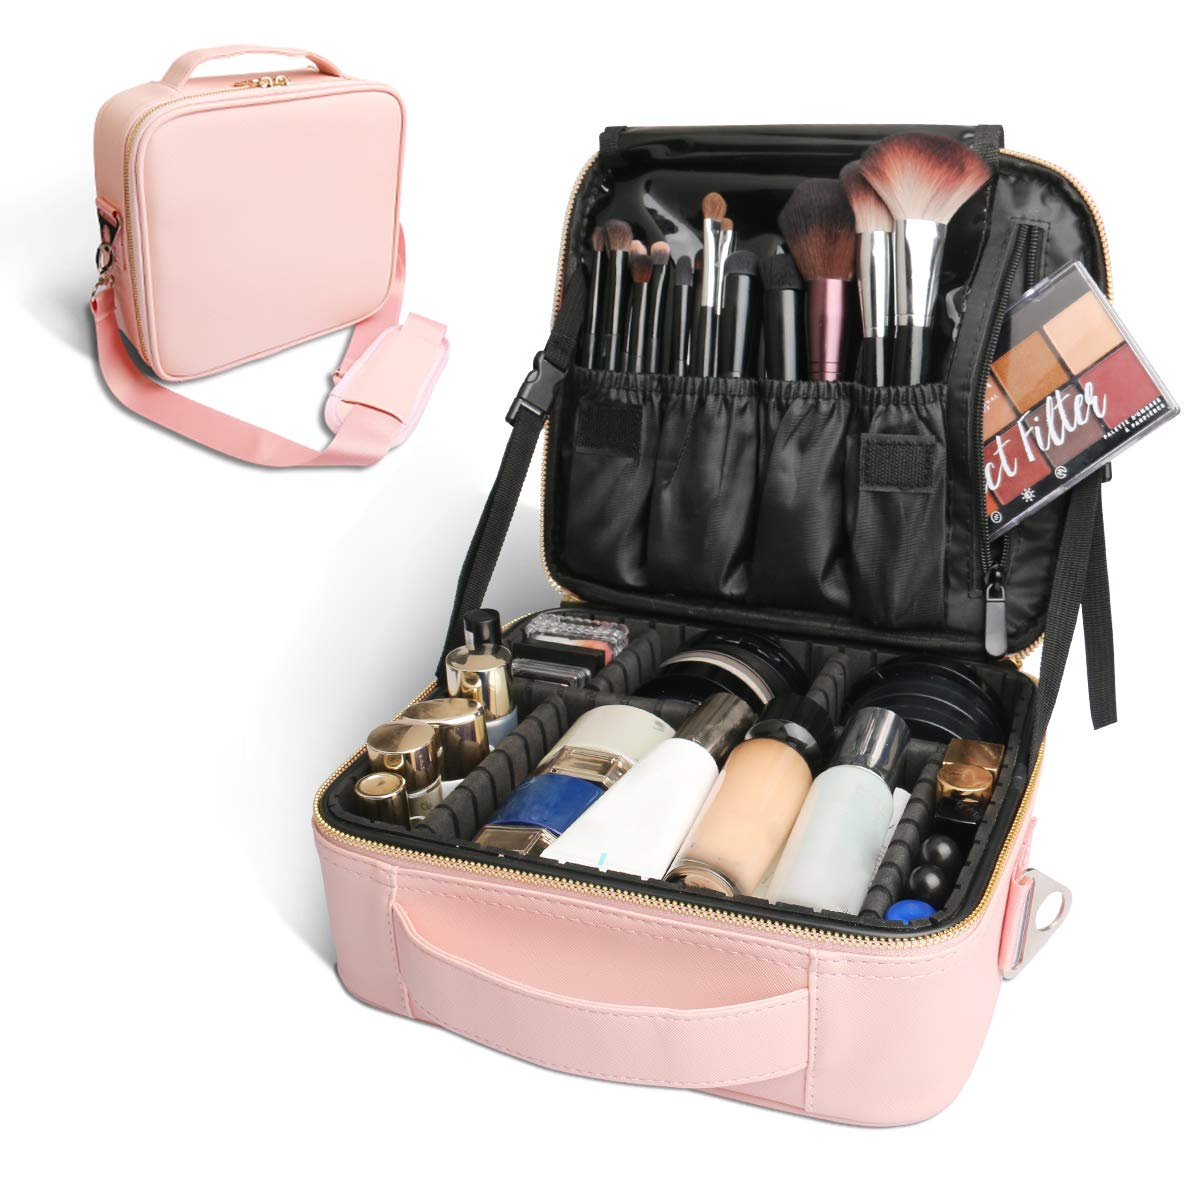 Bvser Travel Makeup Case, PU Leather Portable Organizer Makeup Train Case Makeup Bag Cosmetic Case with Shoulder Strap and Adjustable Dividers for Cosmetics Makeup Brushes Women (Pink) by Bvser